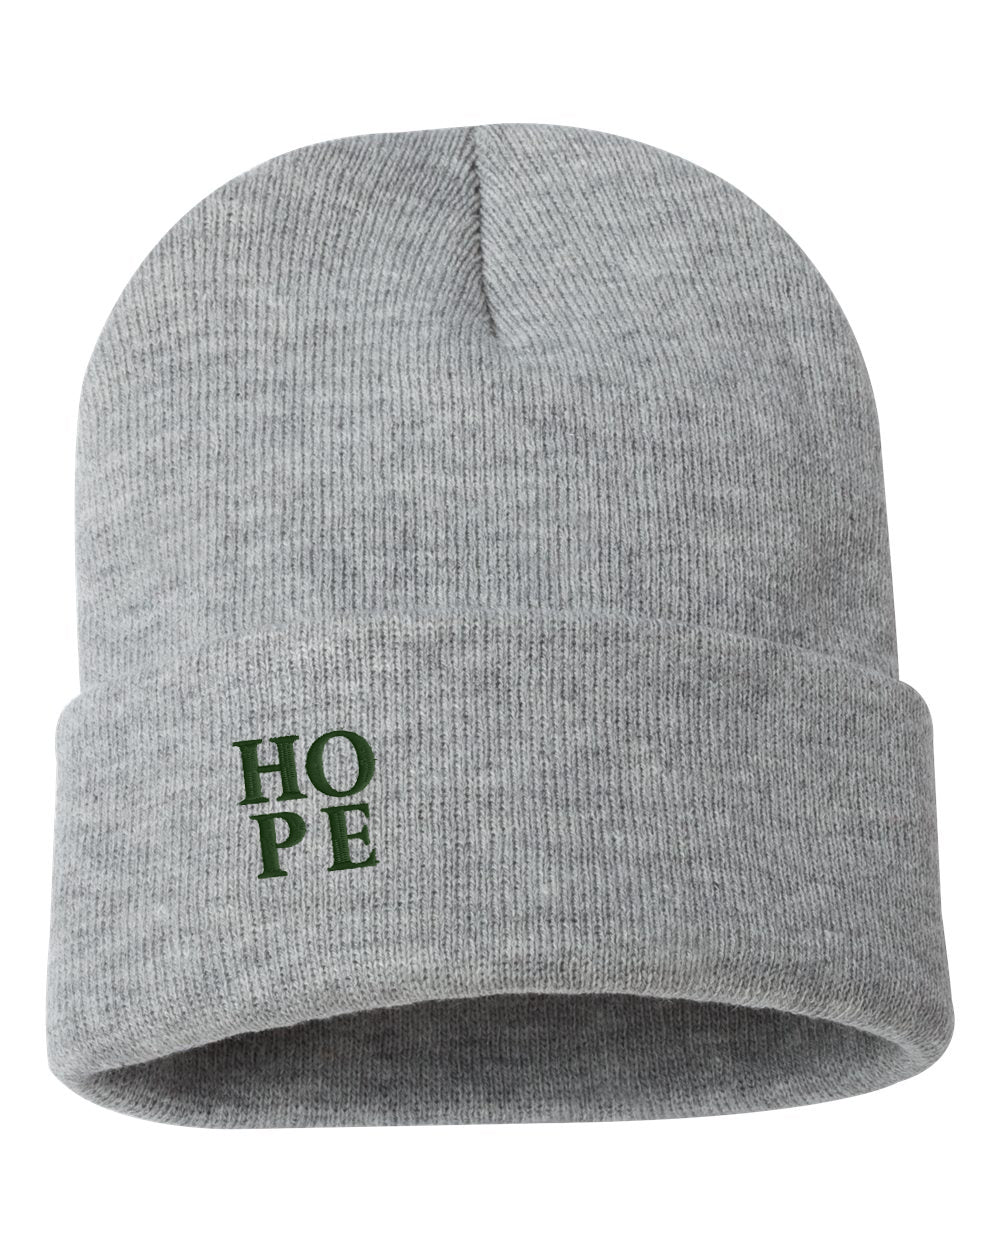 "HOPE Embroidered Ribbed 12"" Inch Acrylic Knit Beanie"